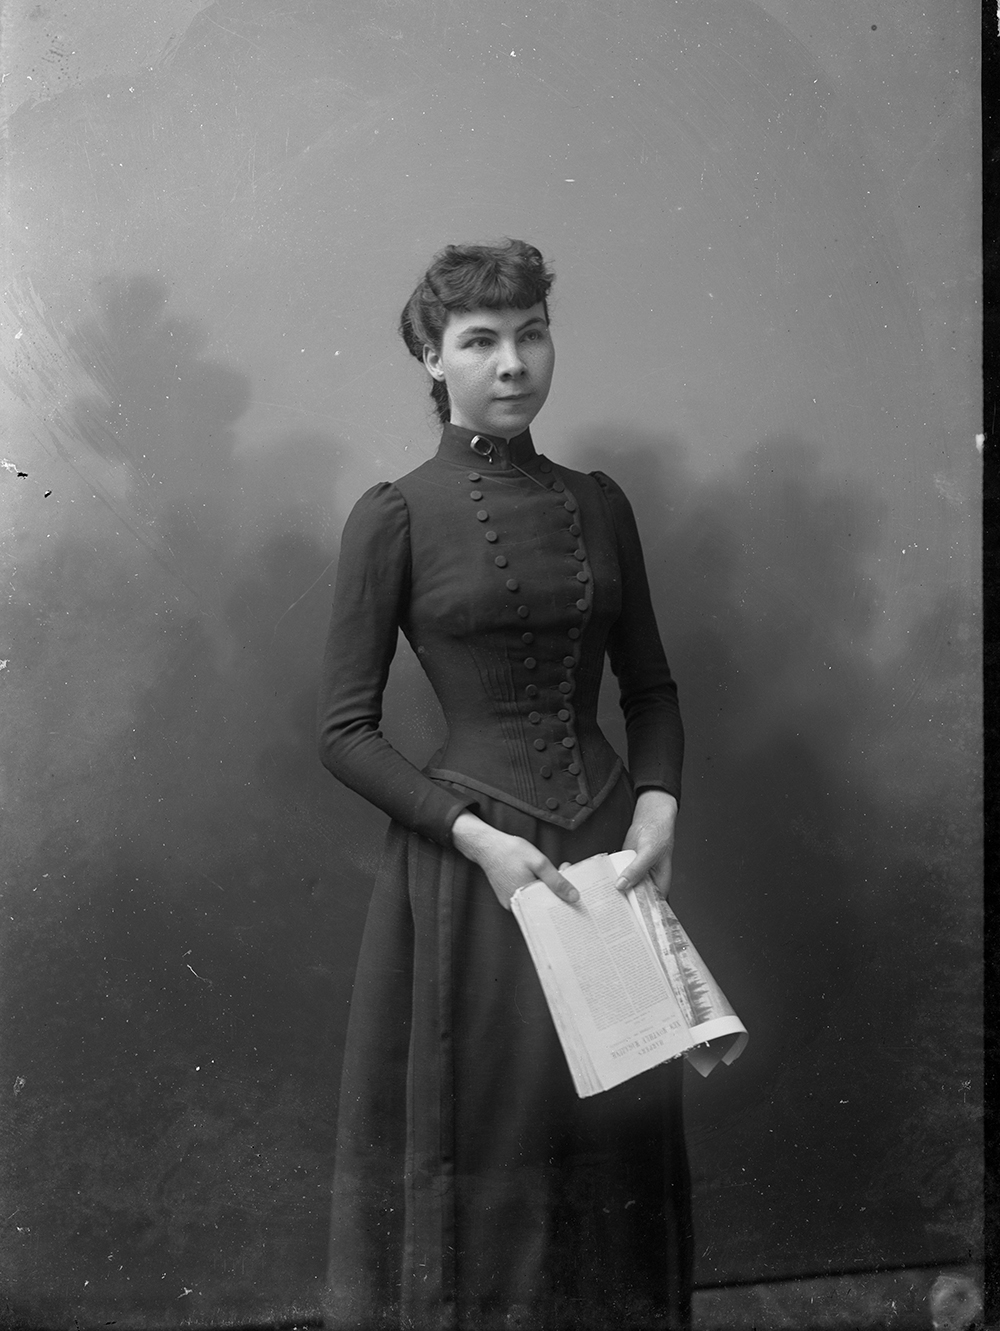 Madeline Pollard, c. 1893. Photograph by C.M. Bell. Library of Congress, Prints and Photographs Division.